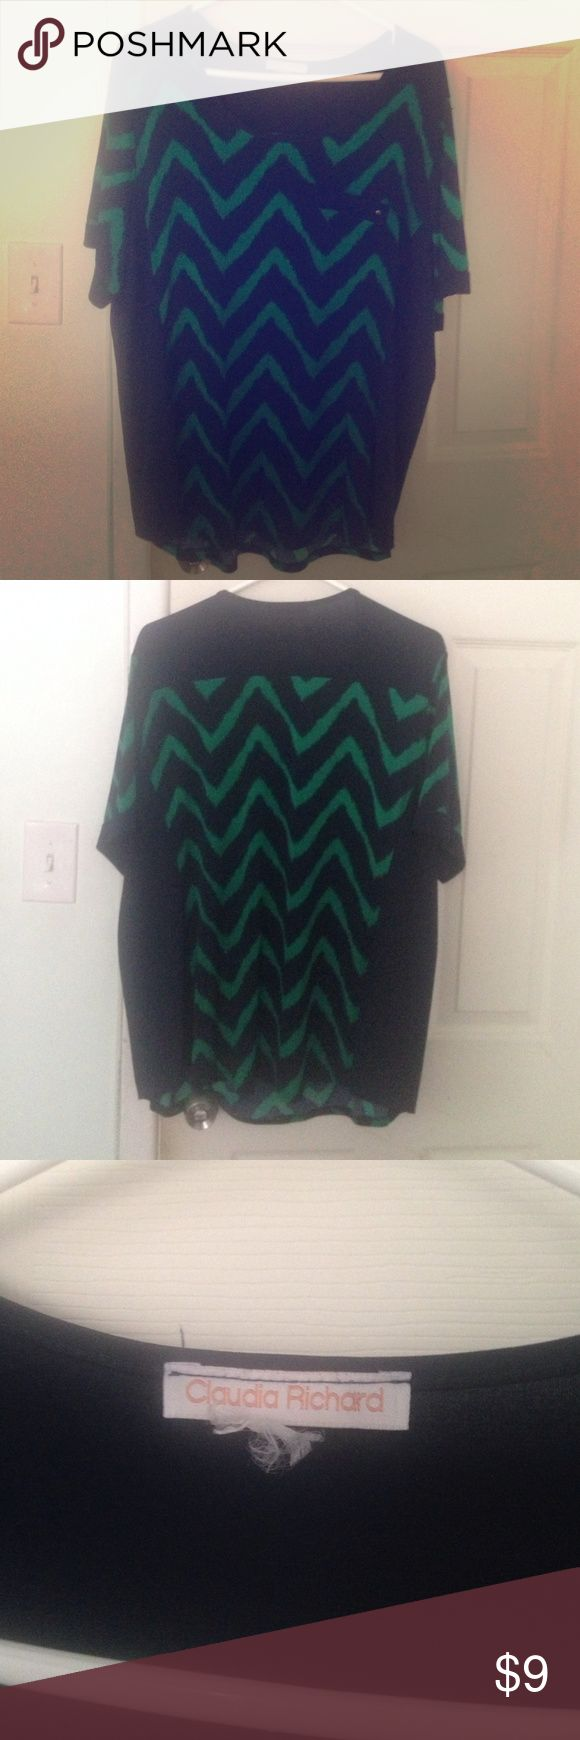 Flattering boutique chevron top Size 1X This is a reposh I never wore. I've had it for almost a year and it's not my style any longer. Very light and comfortable feel. There are no tags, but I would say it fits like a 1X. Claudia Richards Tops Blouses